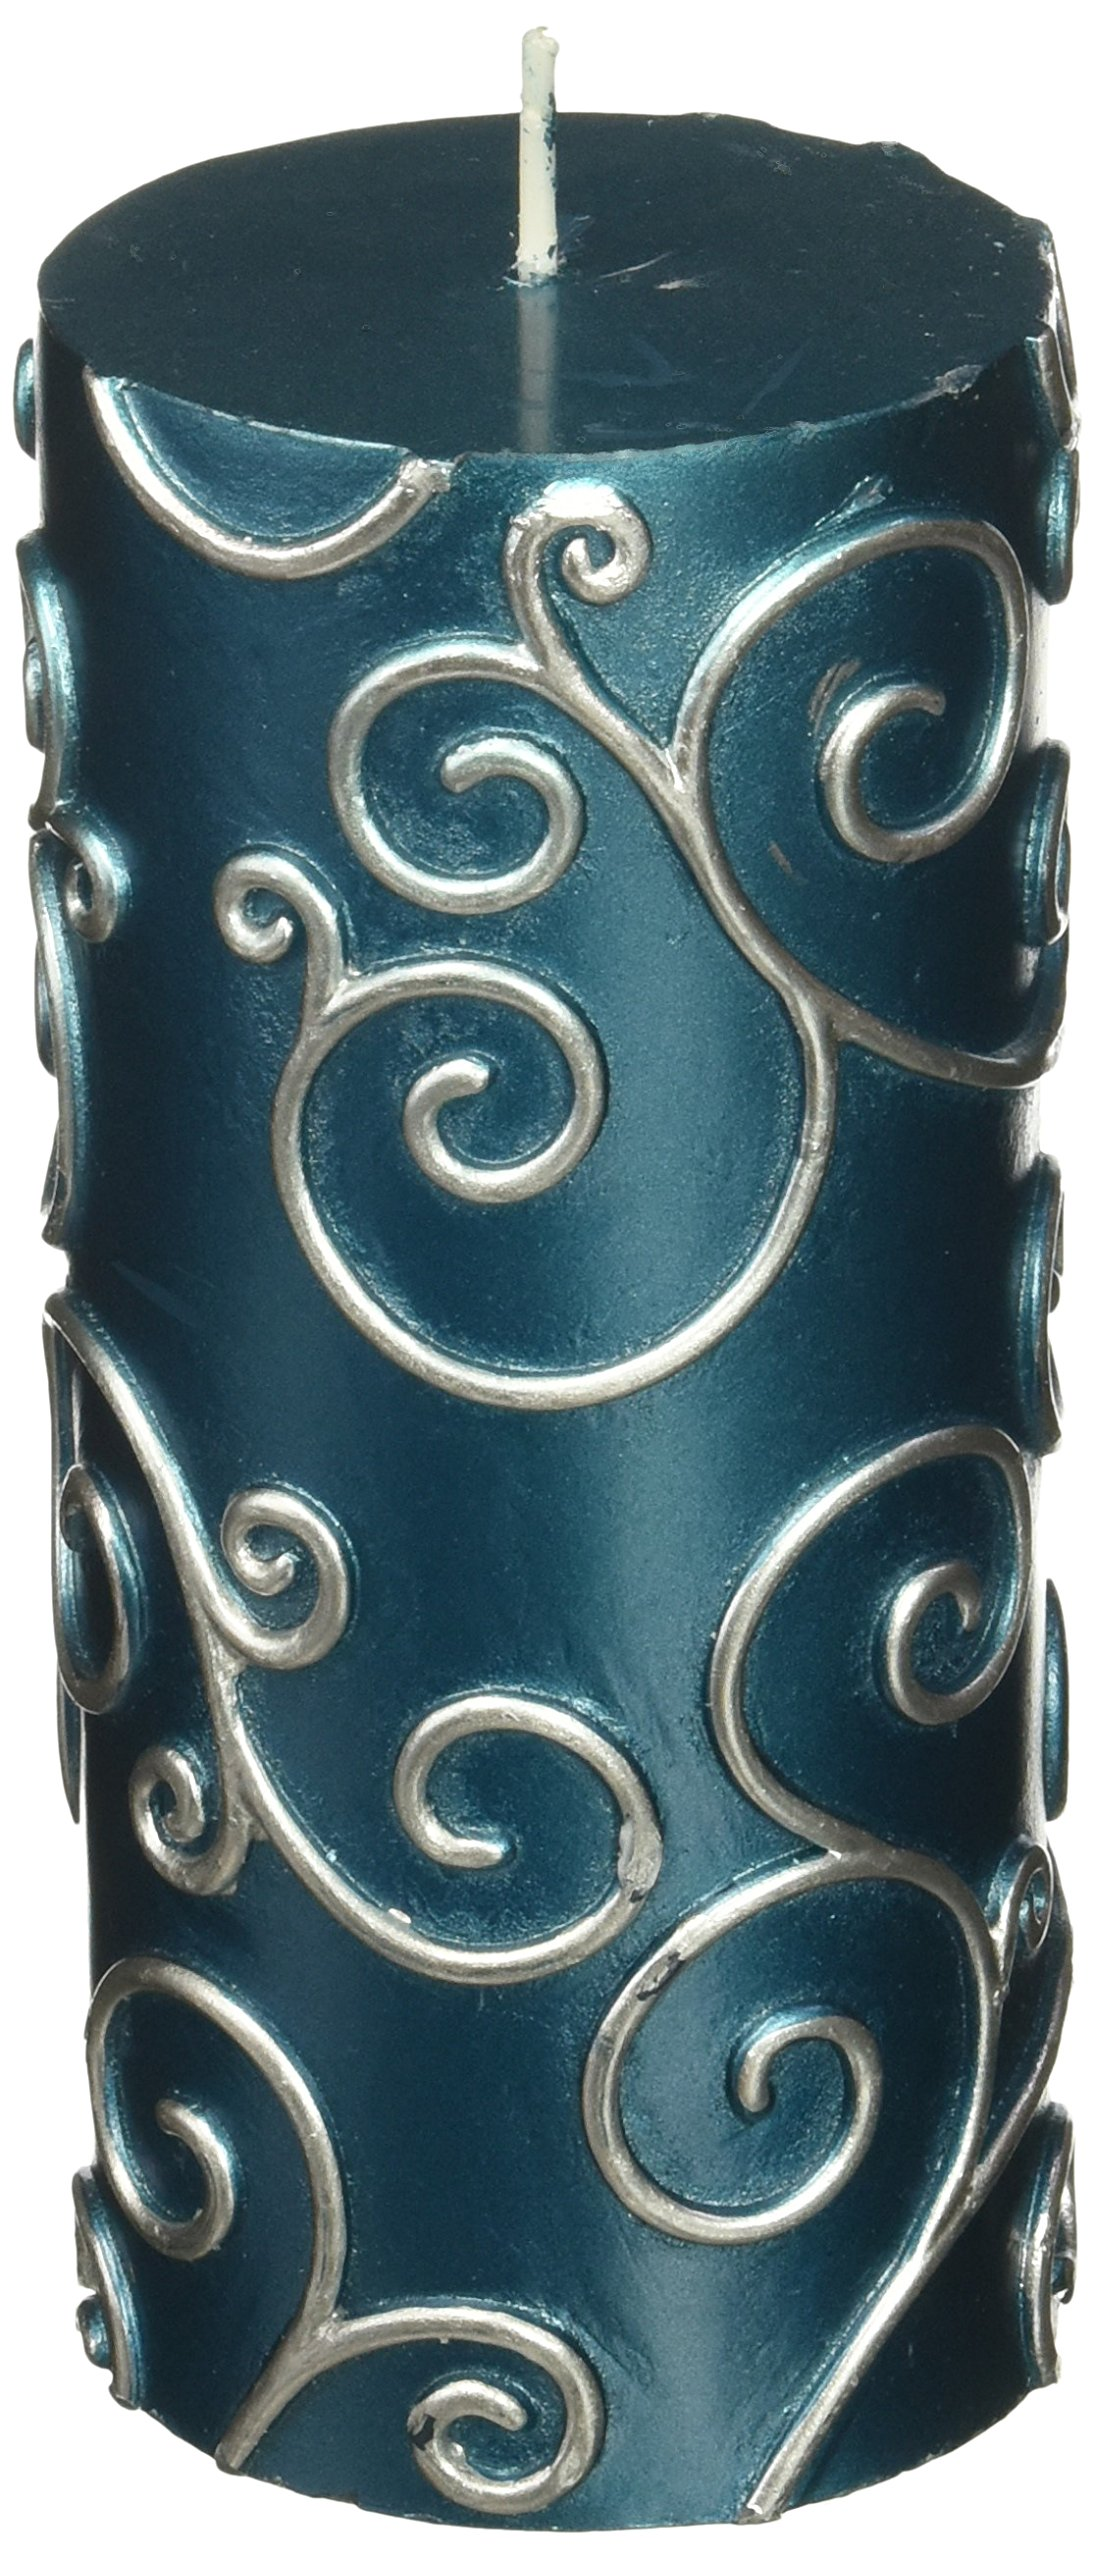 Zest Candle CPS-008_12 12-Piece Scroll Pillar Candle, 3'' x 6'', Blue